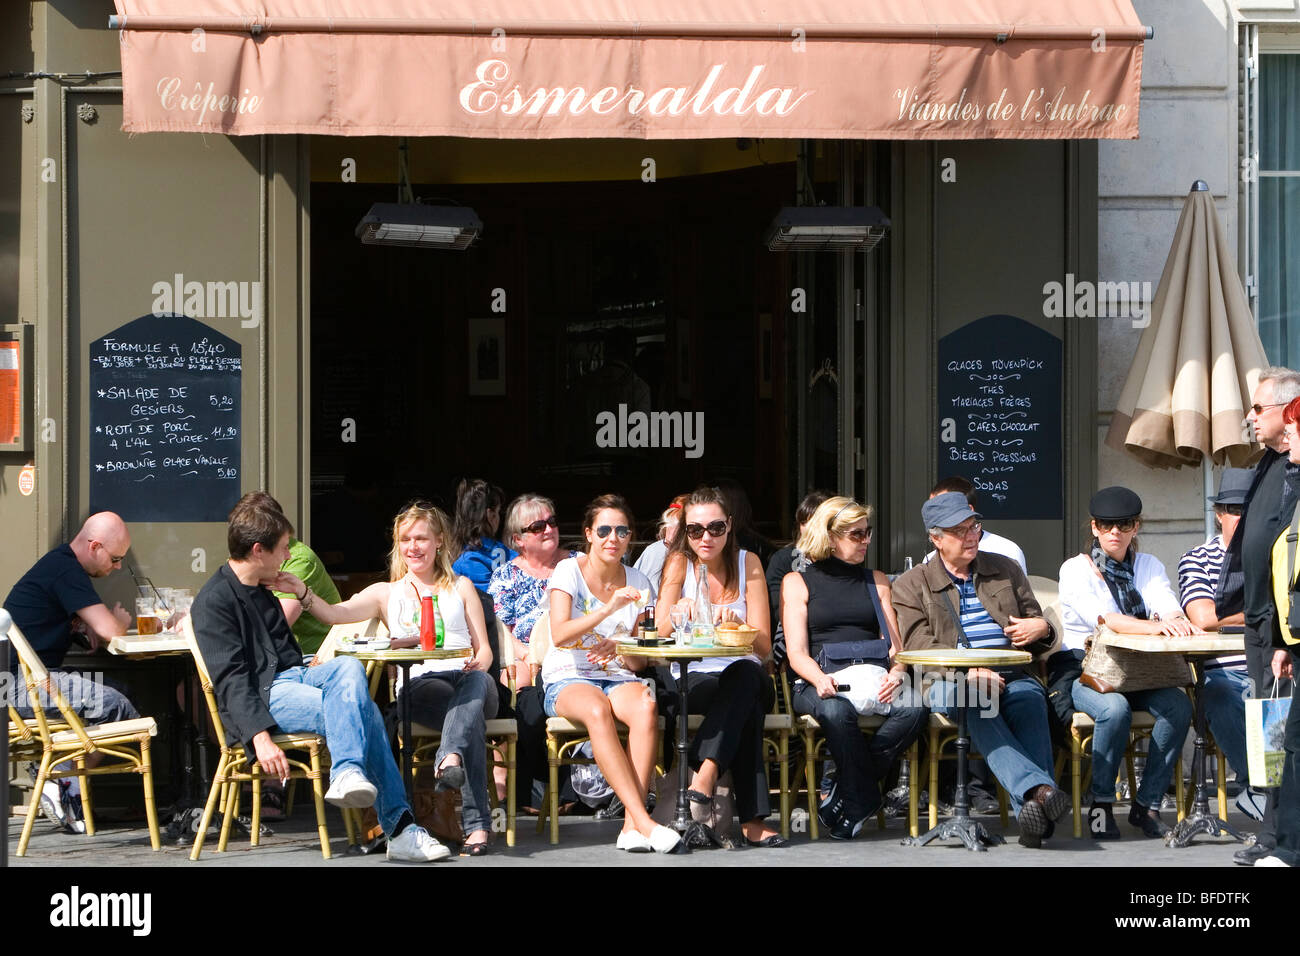 People dine outdoors at a sidewalk cafe in Paris, France. - Stock Image